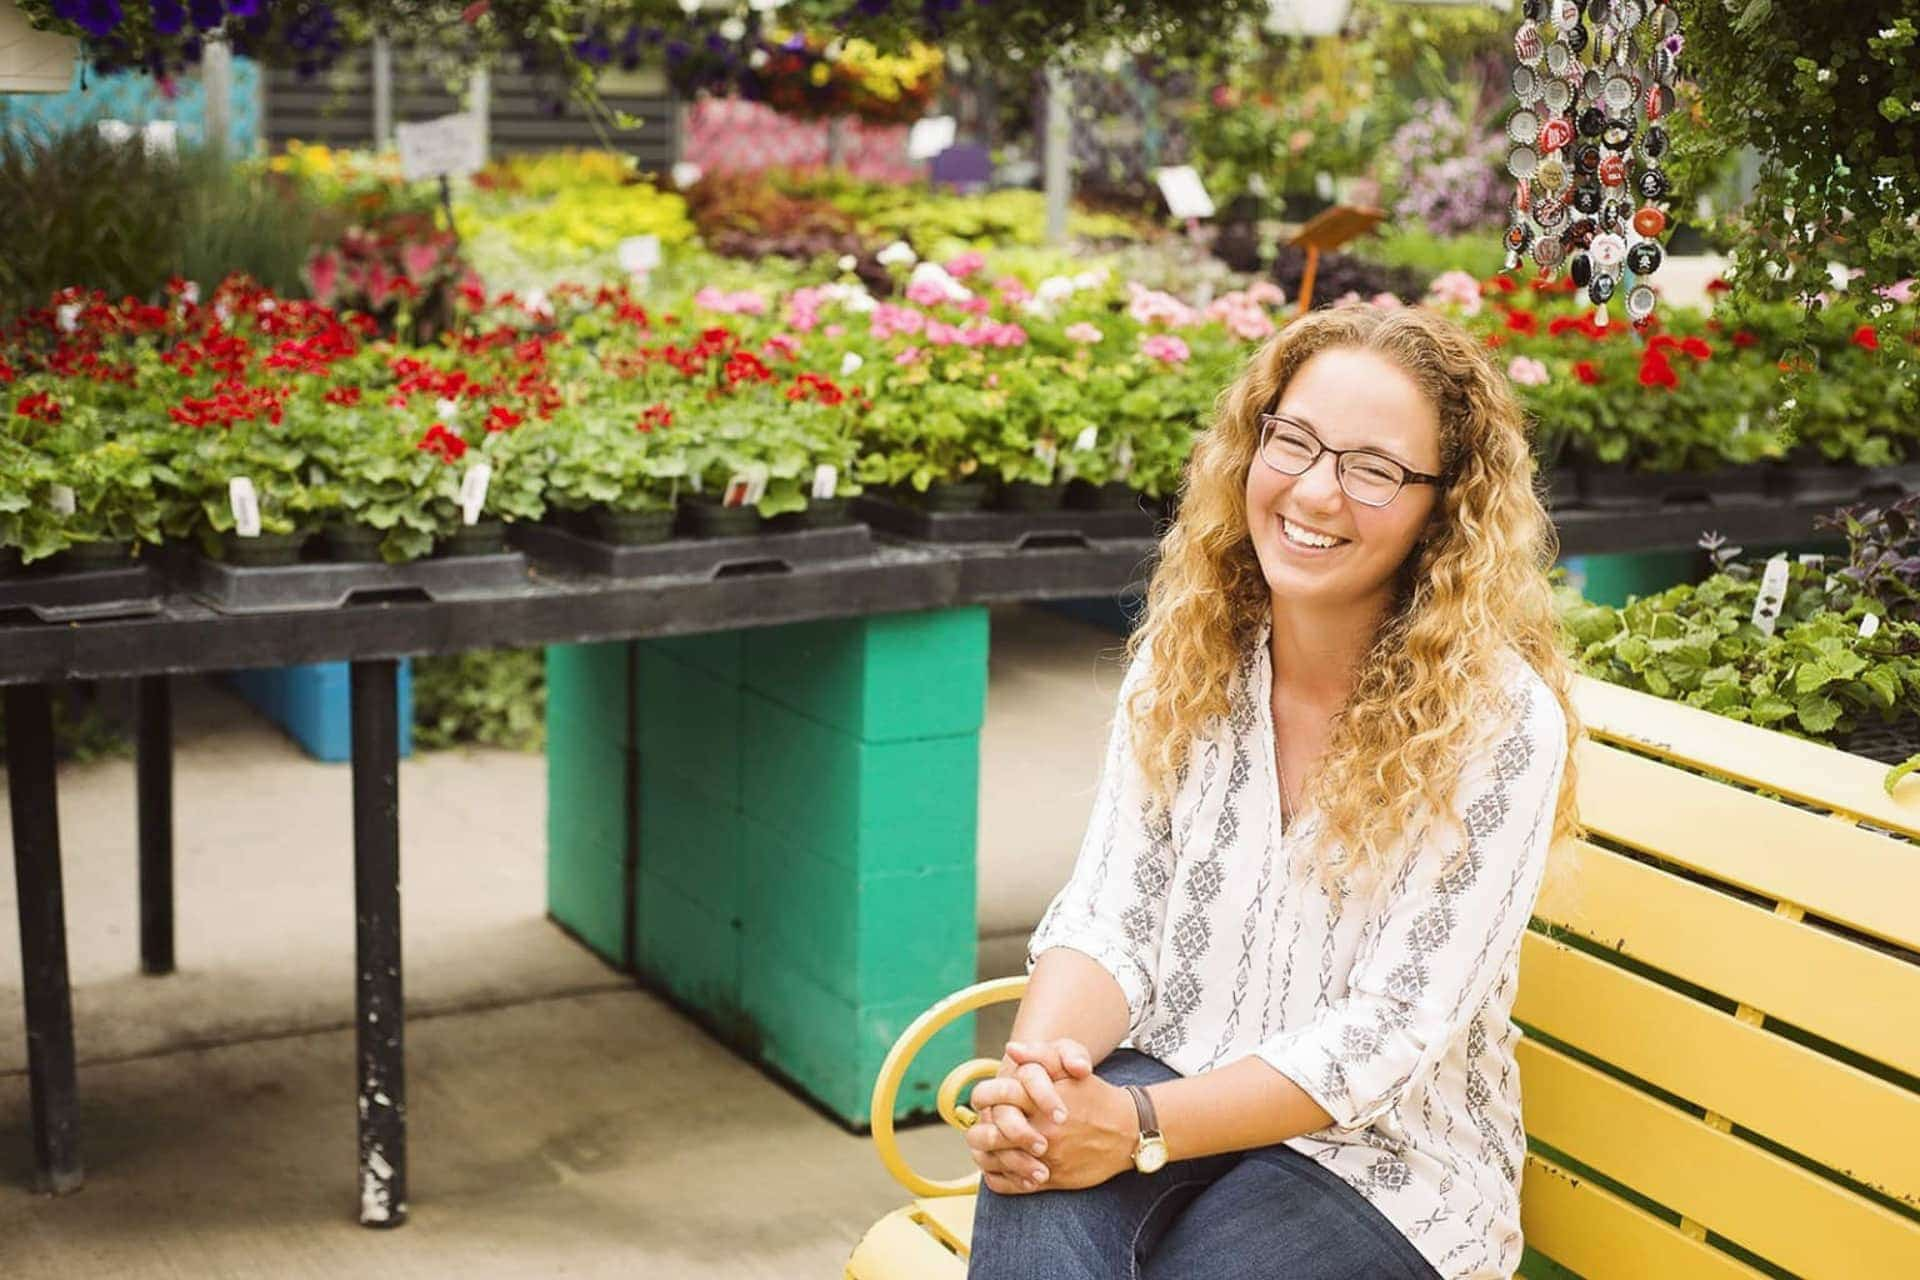 She's ready to grow! New horticulturist Dixie Green joins the City of Buckhannon Oct. 1